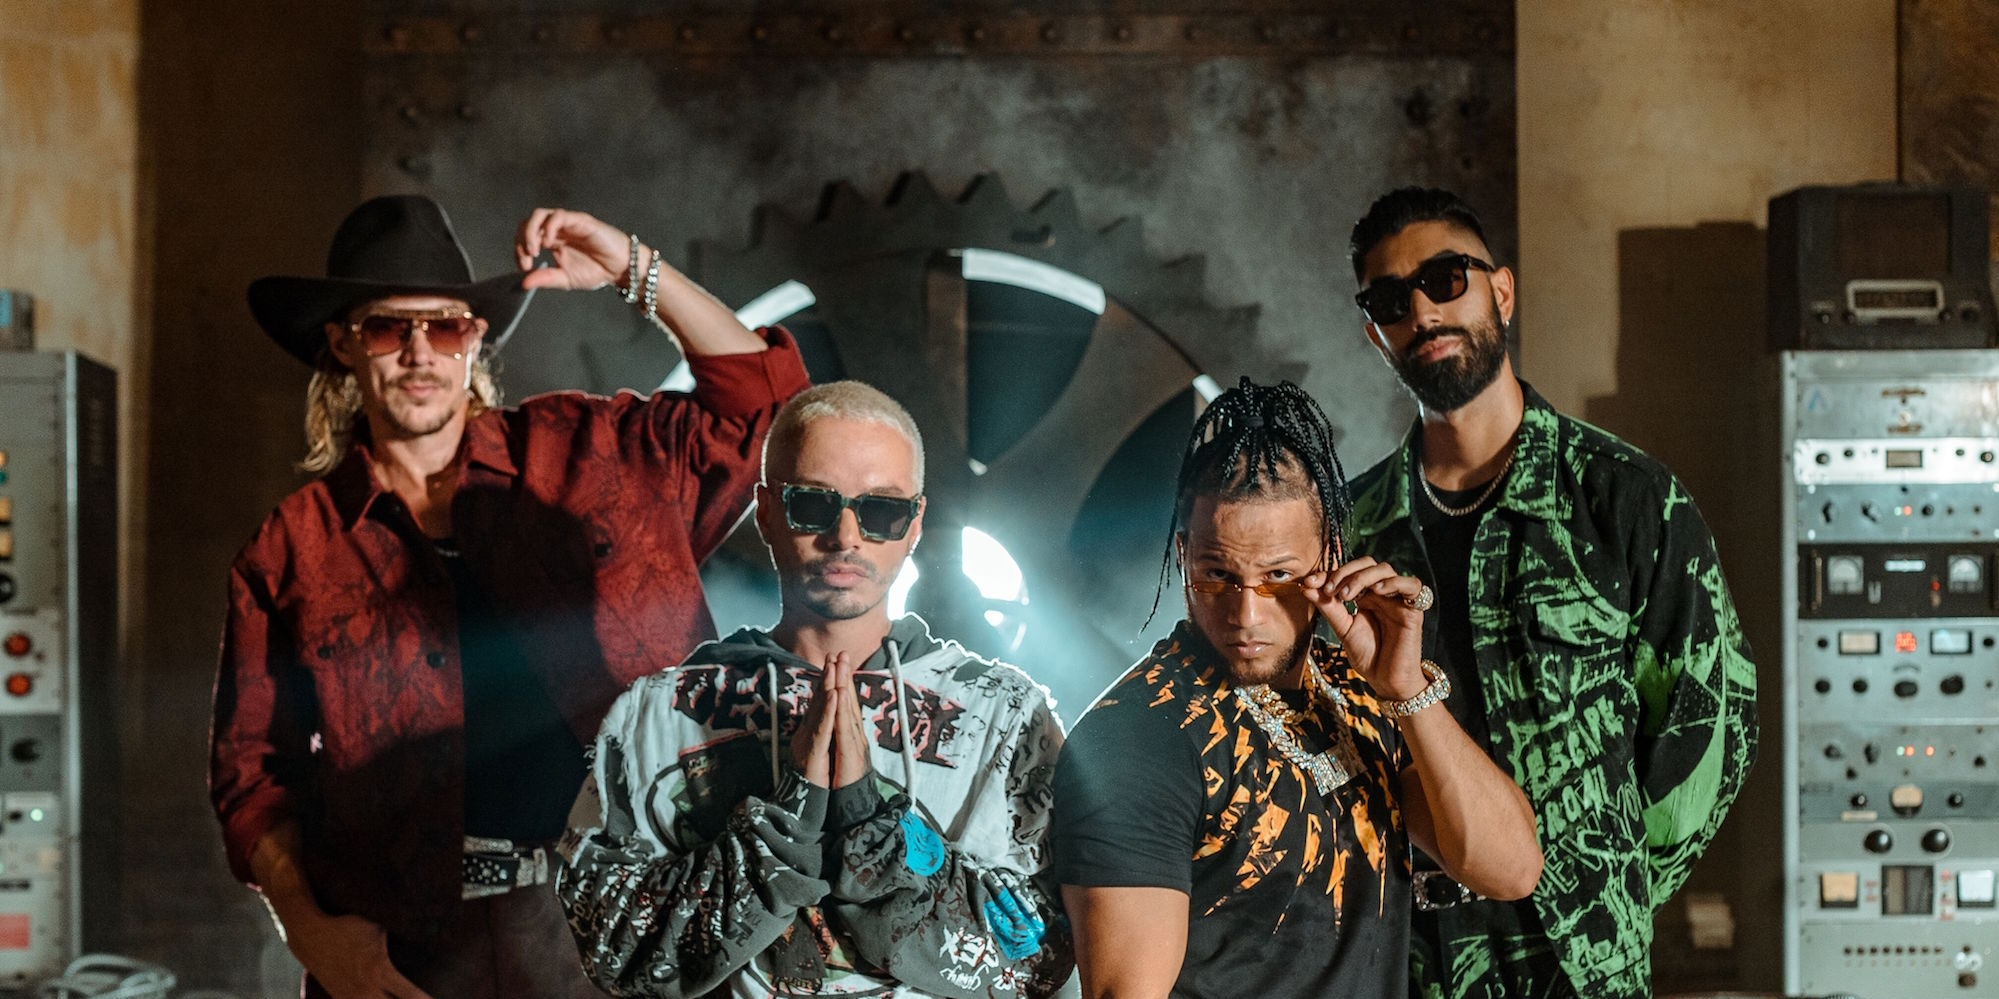 Major Lazer share new song and music video 'Que Calor' featuring J Balvin and El Alfa